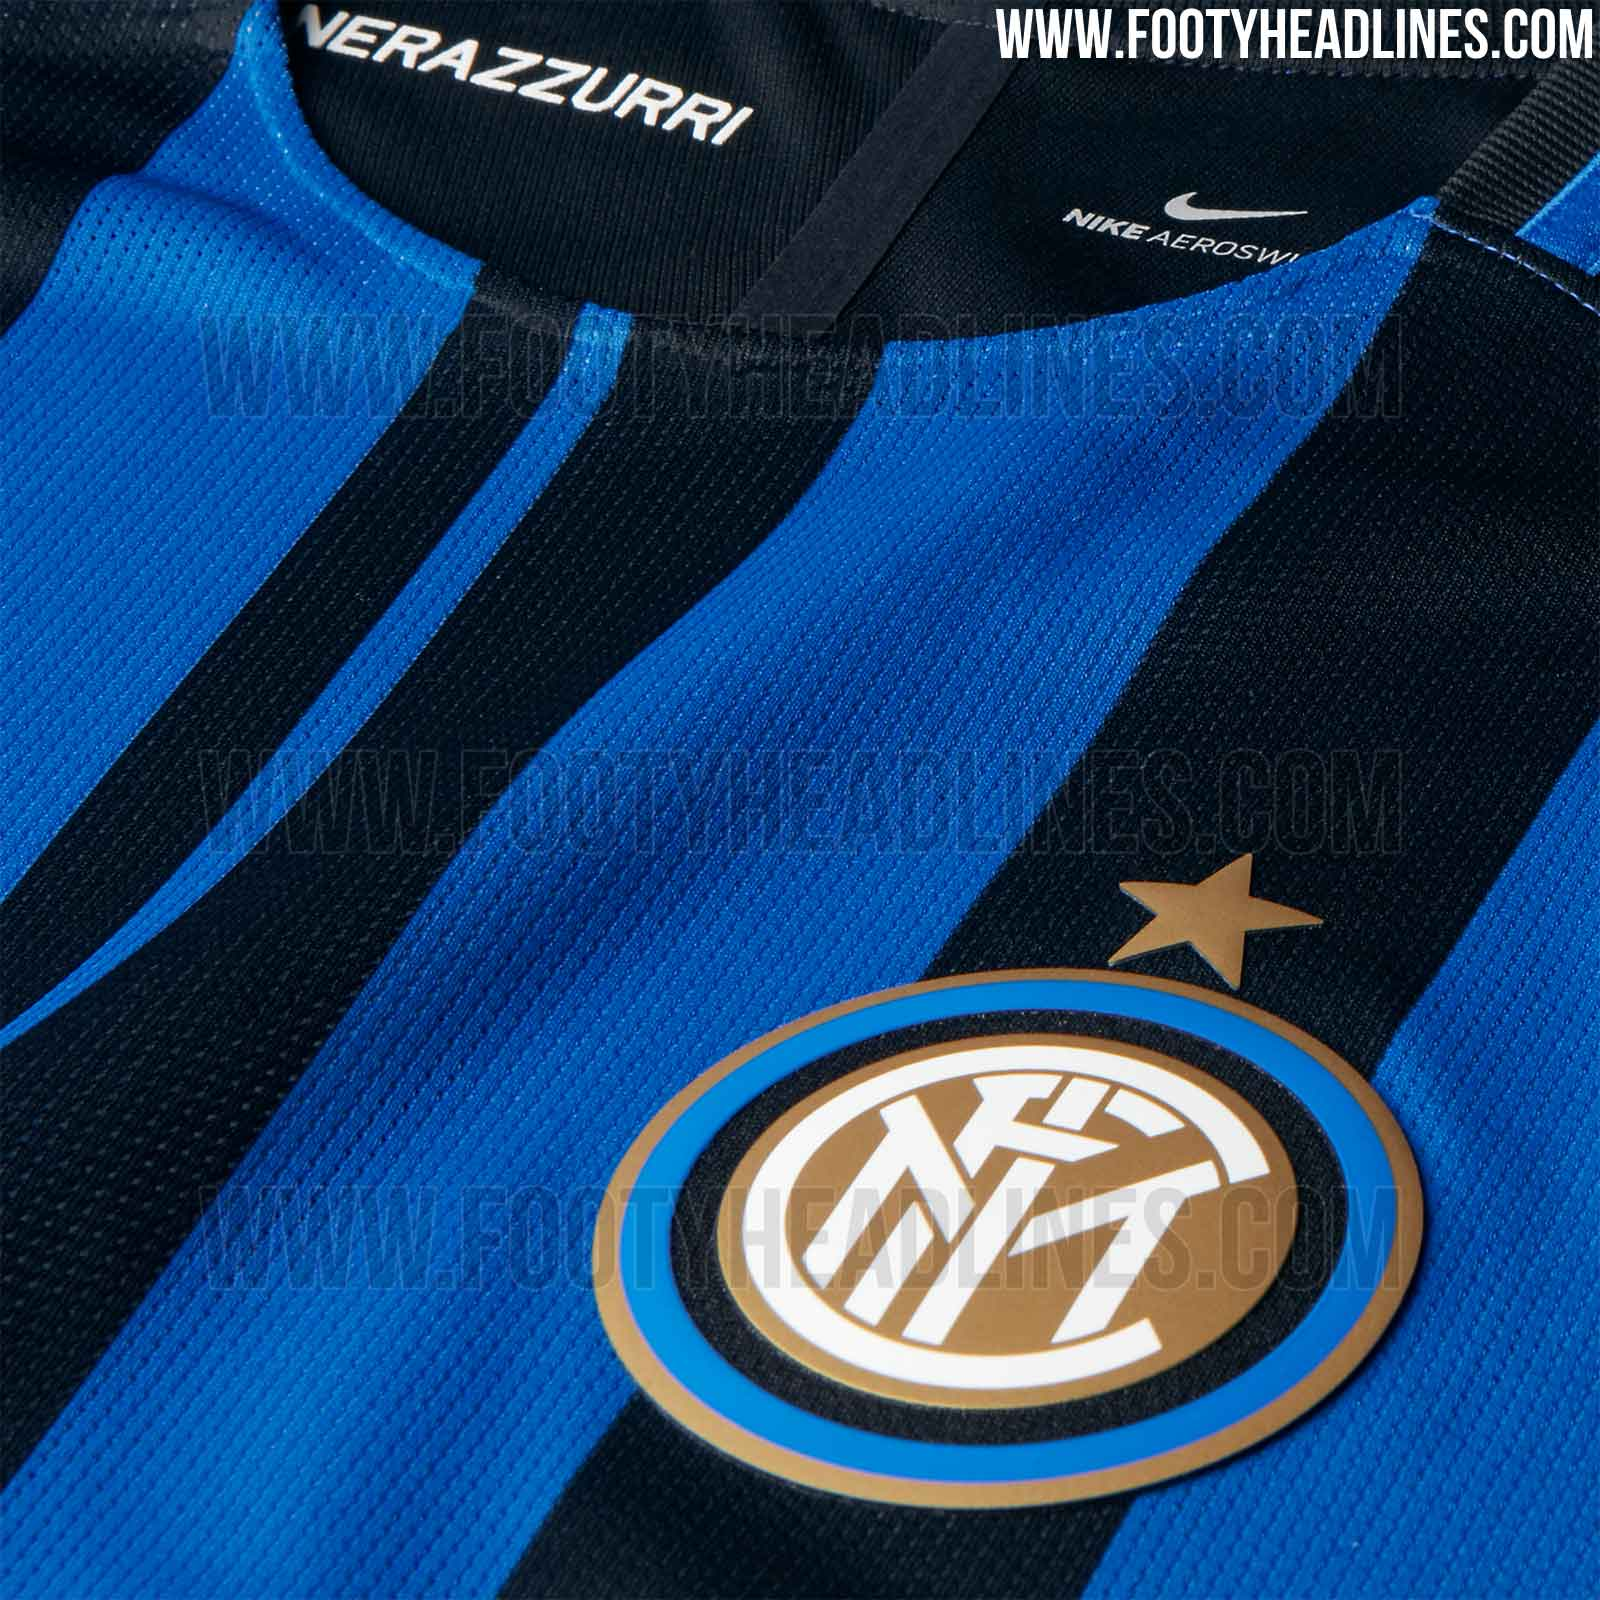 Inter milan 17 18 home kit released footy headlines for Inter designing